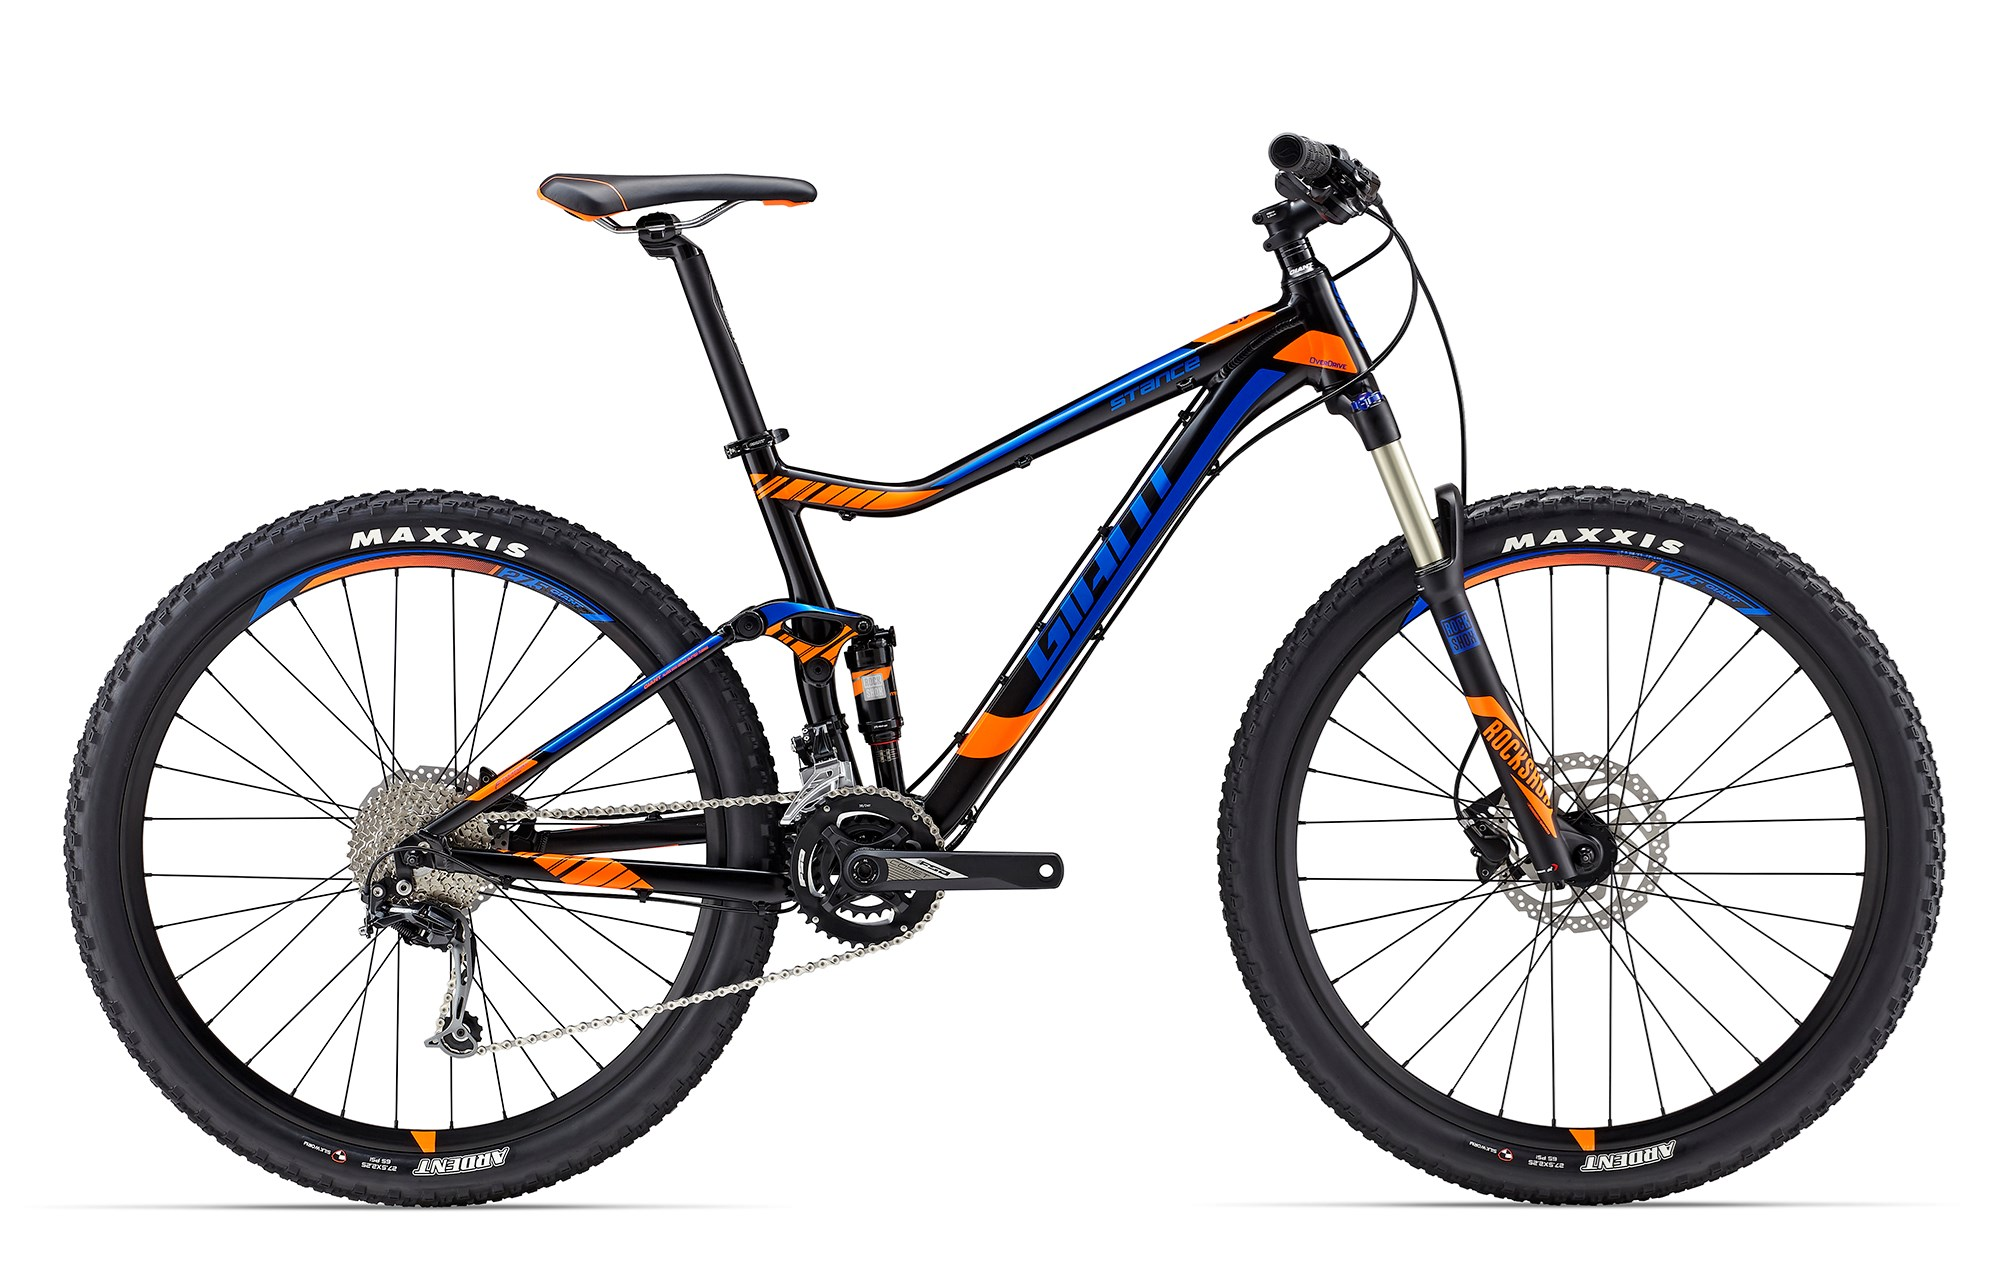 Giant bicycle co pty ltd various giant and liv bicycles for Colorado motorized bicycle laws